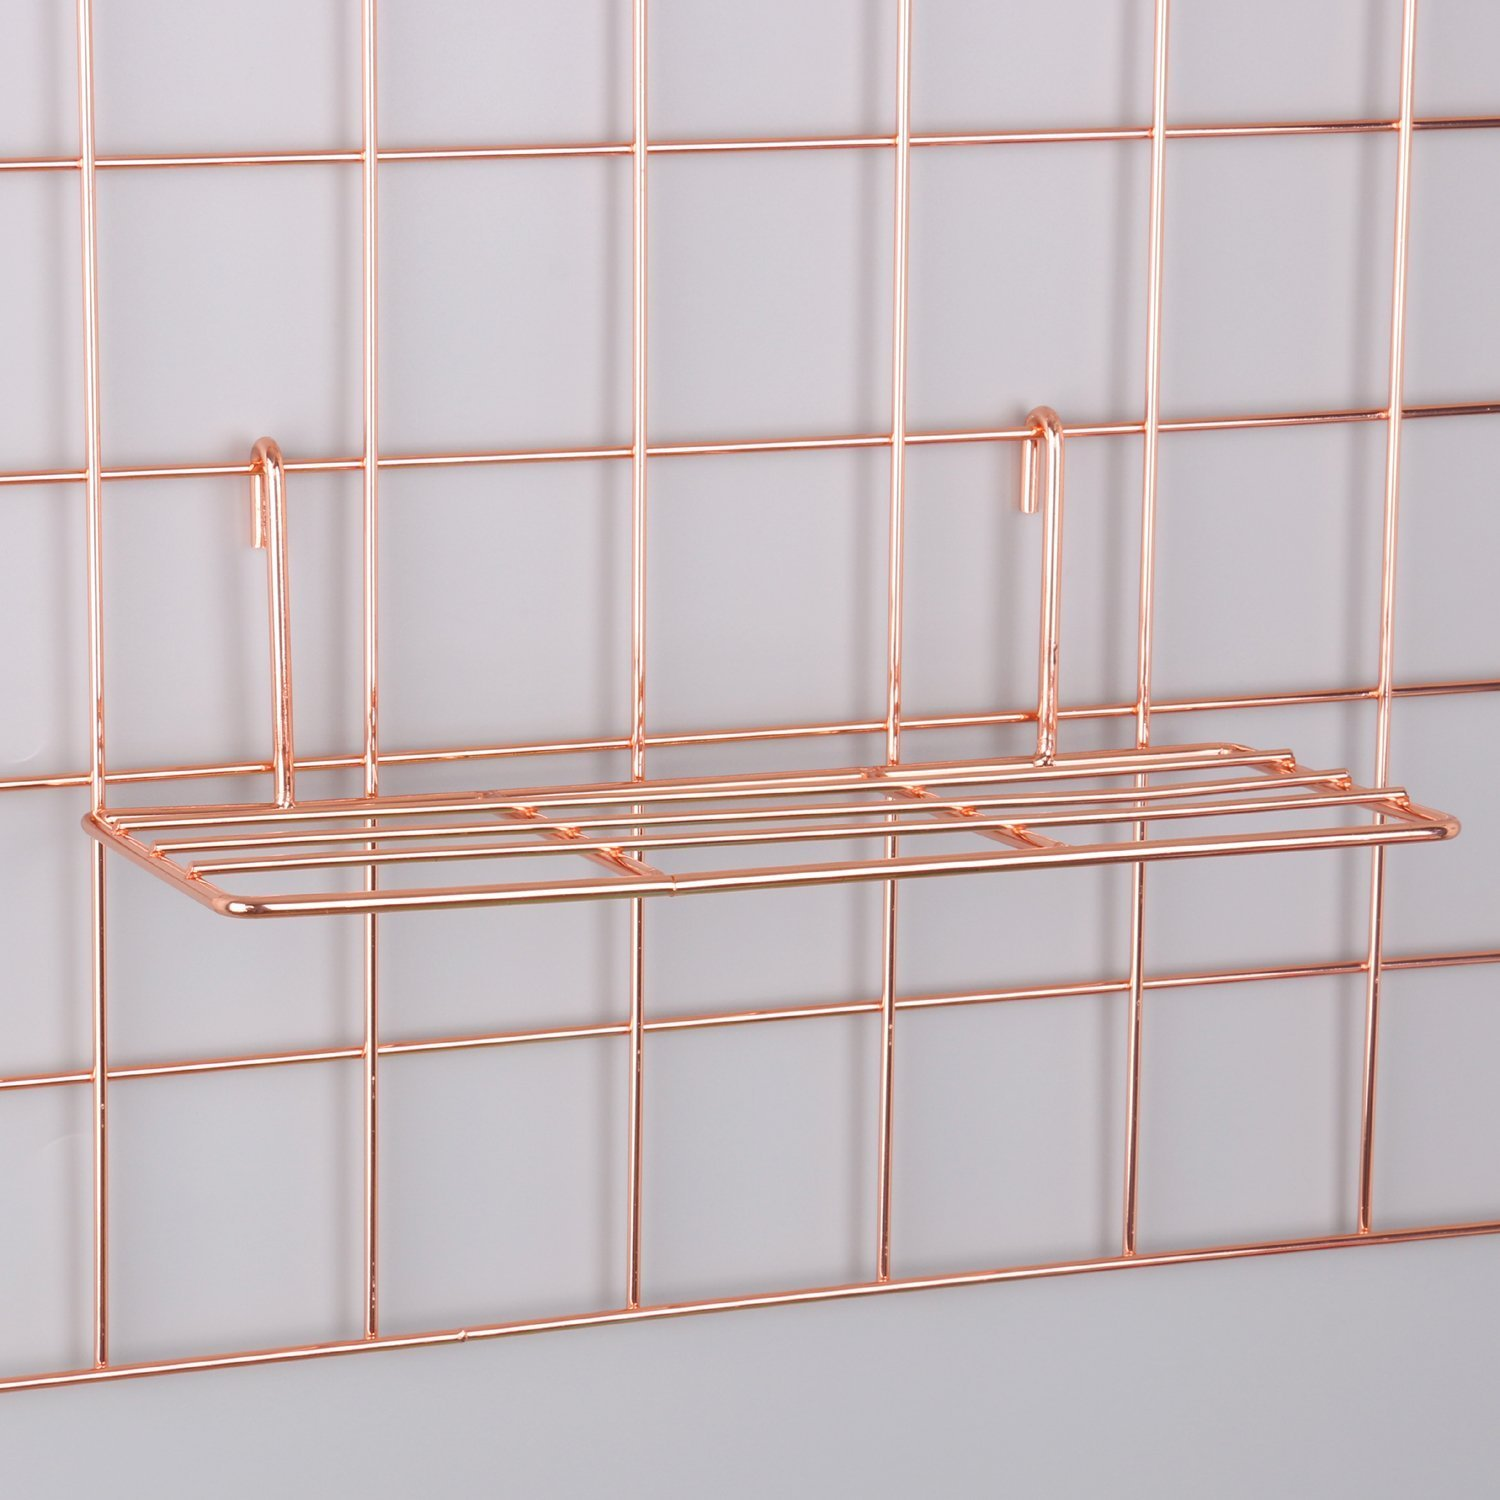 Rose Gold Straight Shelf Rack for Gridwall Grid Panel Wall Mountable Wire Organizer Storage Flower Pot Display Decor 9.8'' x 3.9''